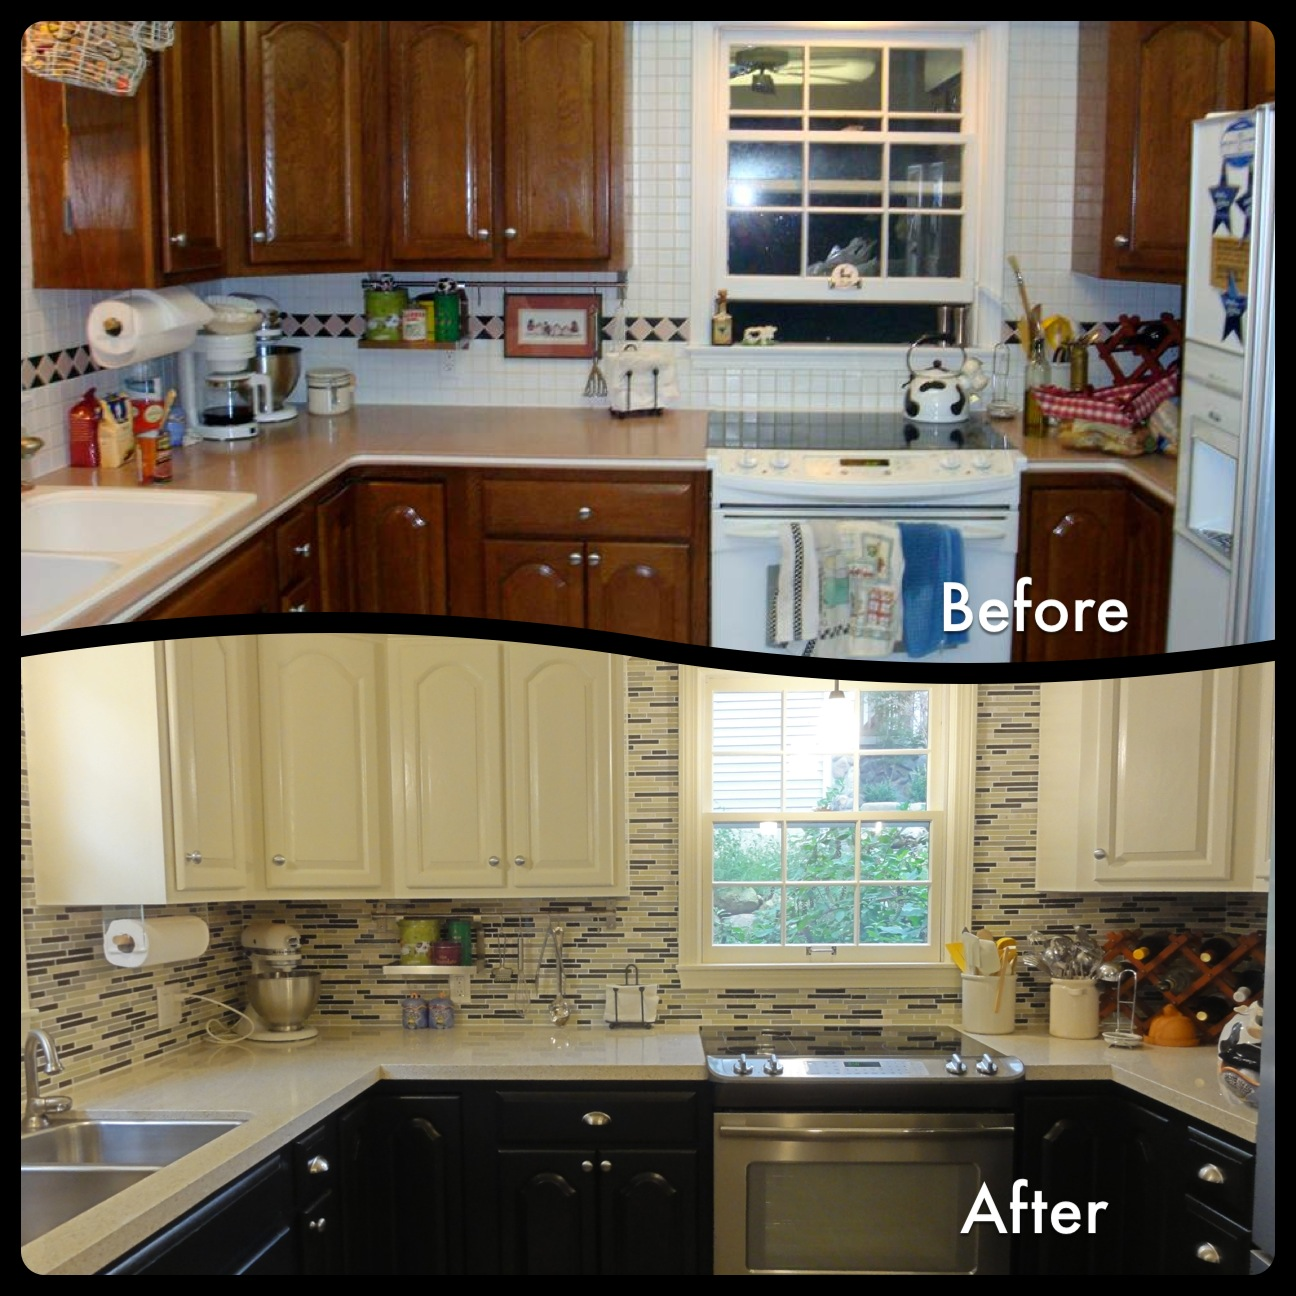 Behr Paint For Kitchen Cabinets: Behr Colors, Kitchen Wall Paints And Eggshell On Pinterest